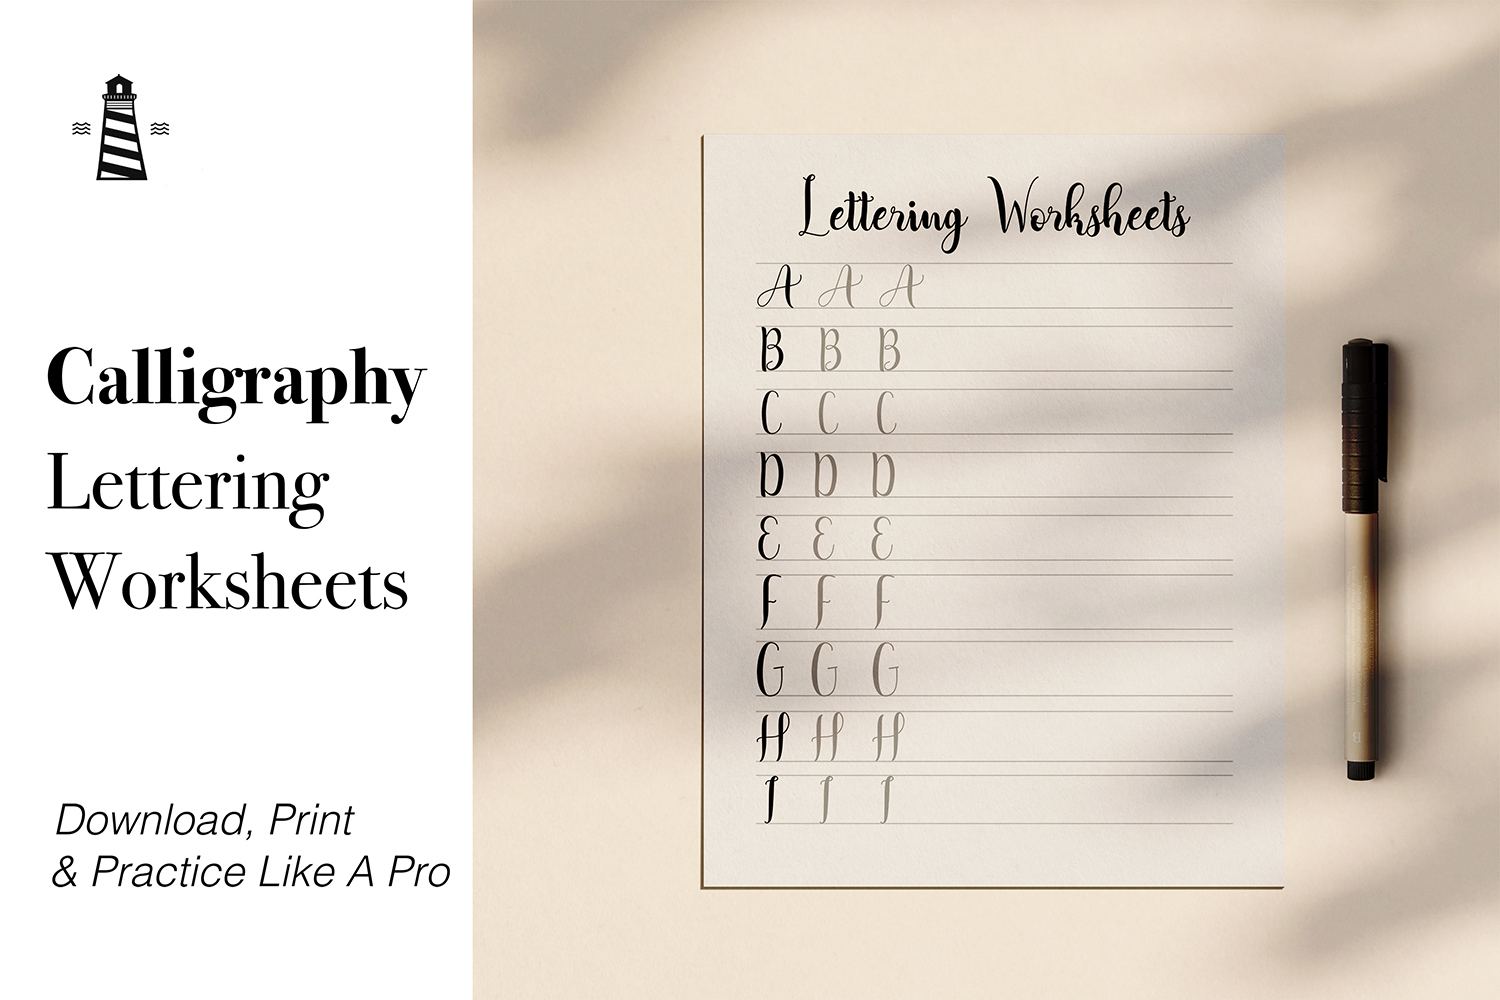 photograph relating to Lettering Printable named Lettering Printable Educate Sheets